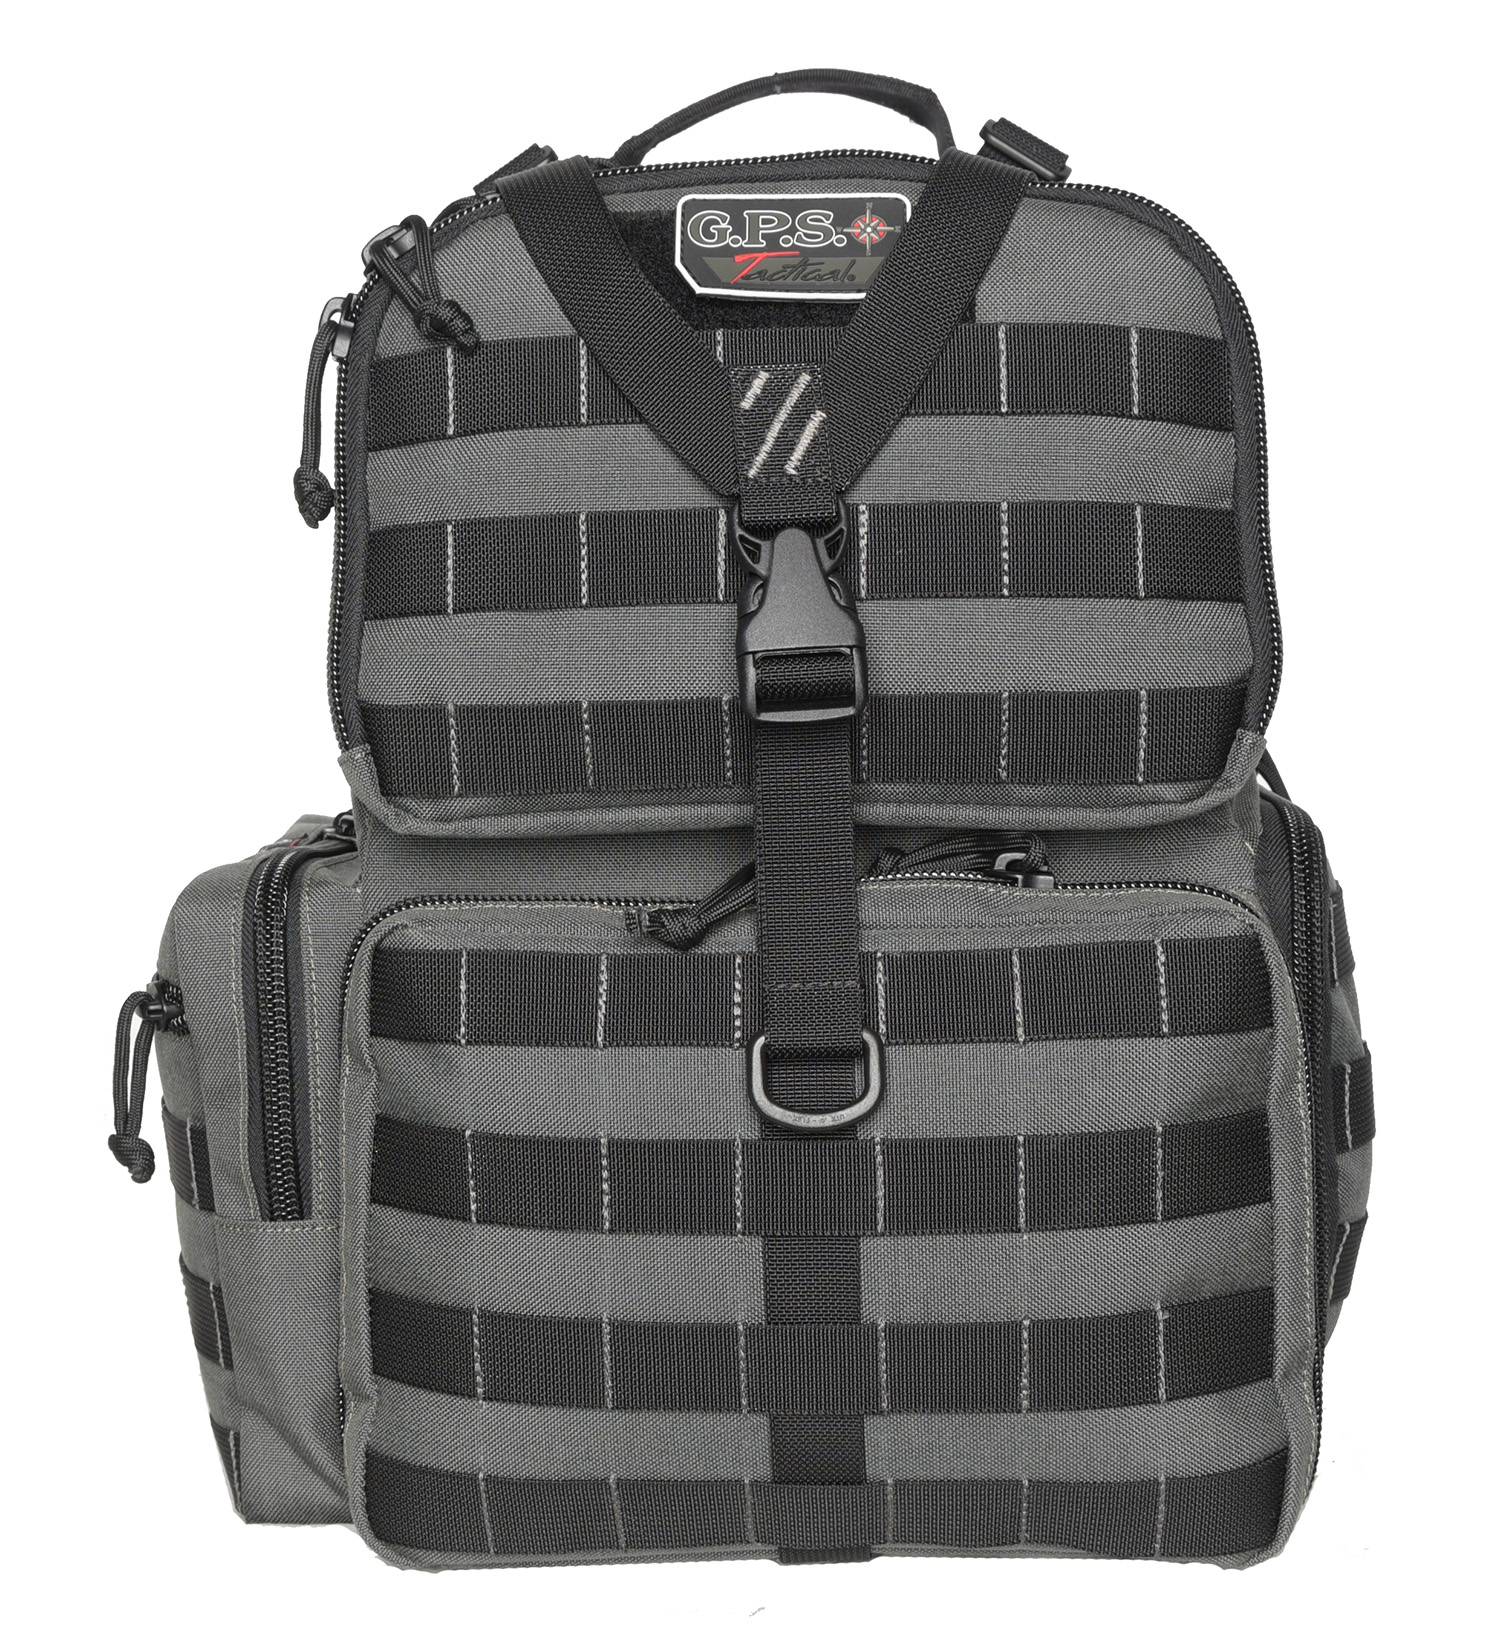 G*Outdoors GPS-T1612BPG Tactical Range Backpack Gray 1000D Polyester with Removable Pistol Storage, Visual ID Storage System & Lockable Zippers Holds 3 Handguns, Ammo & Accessories